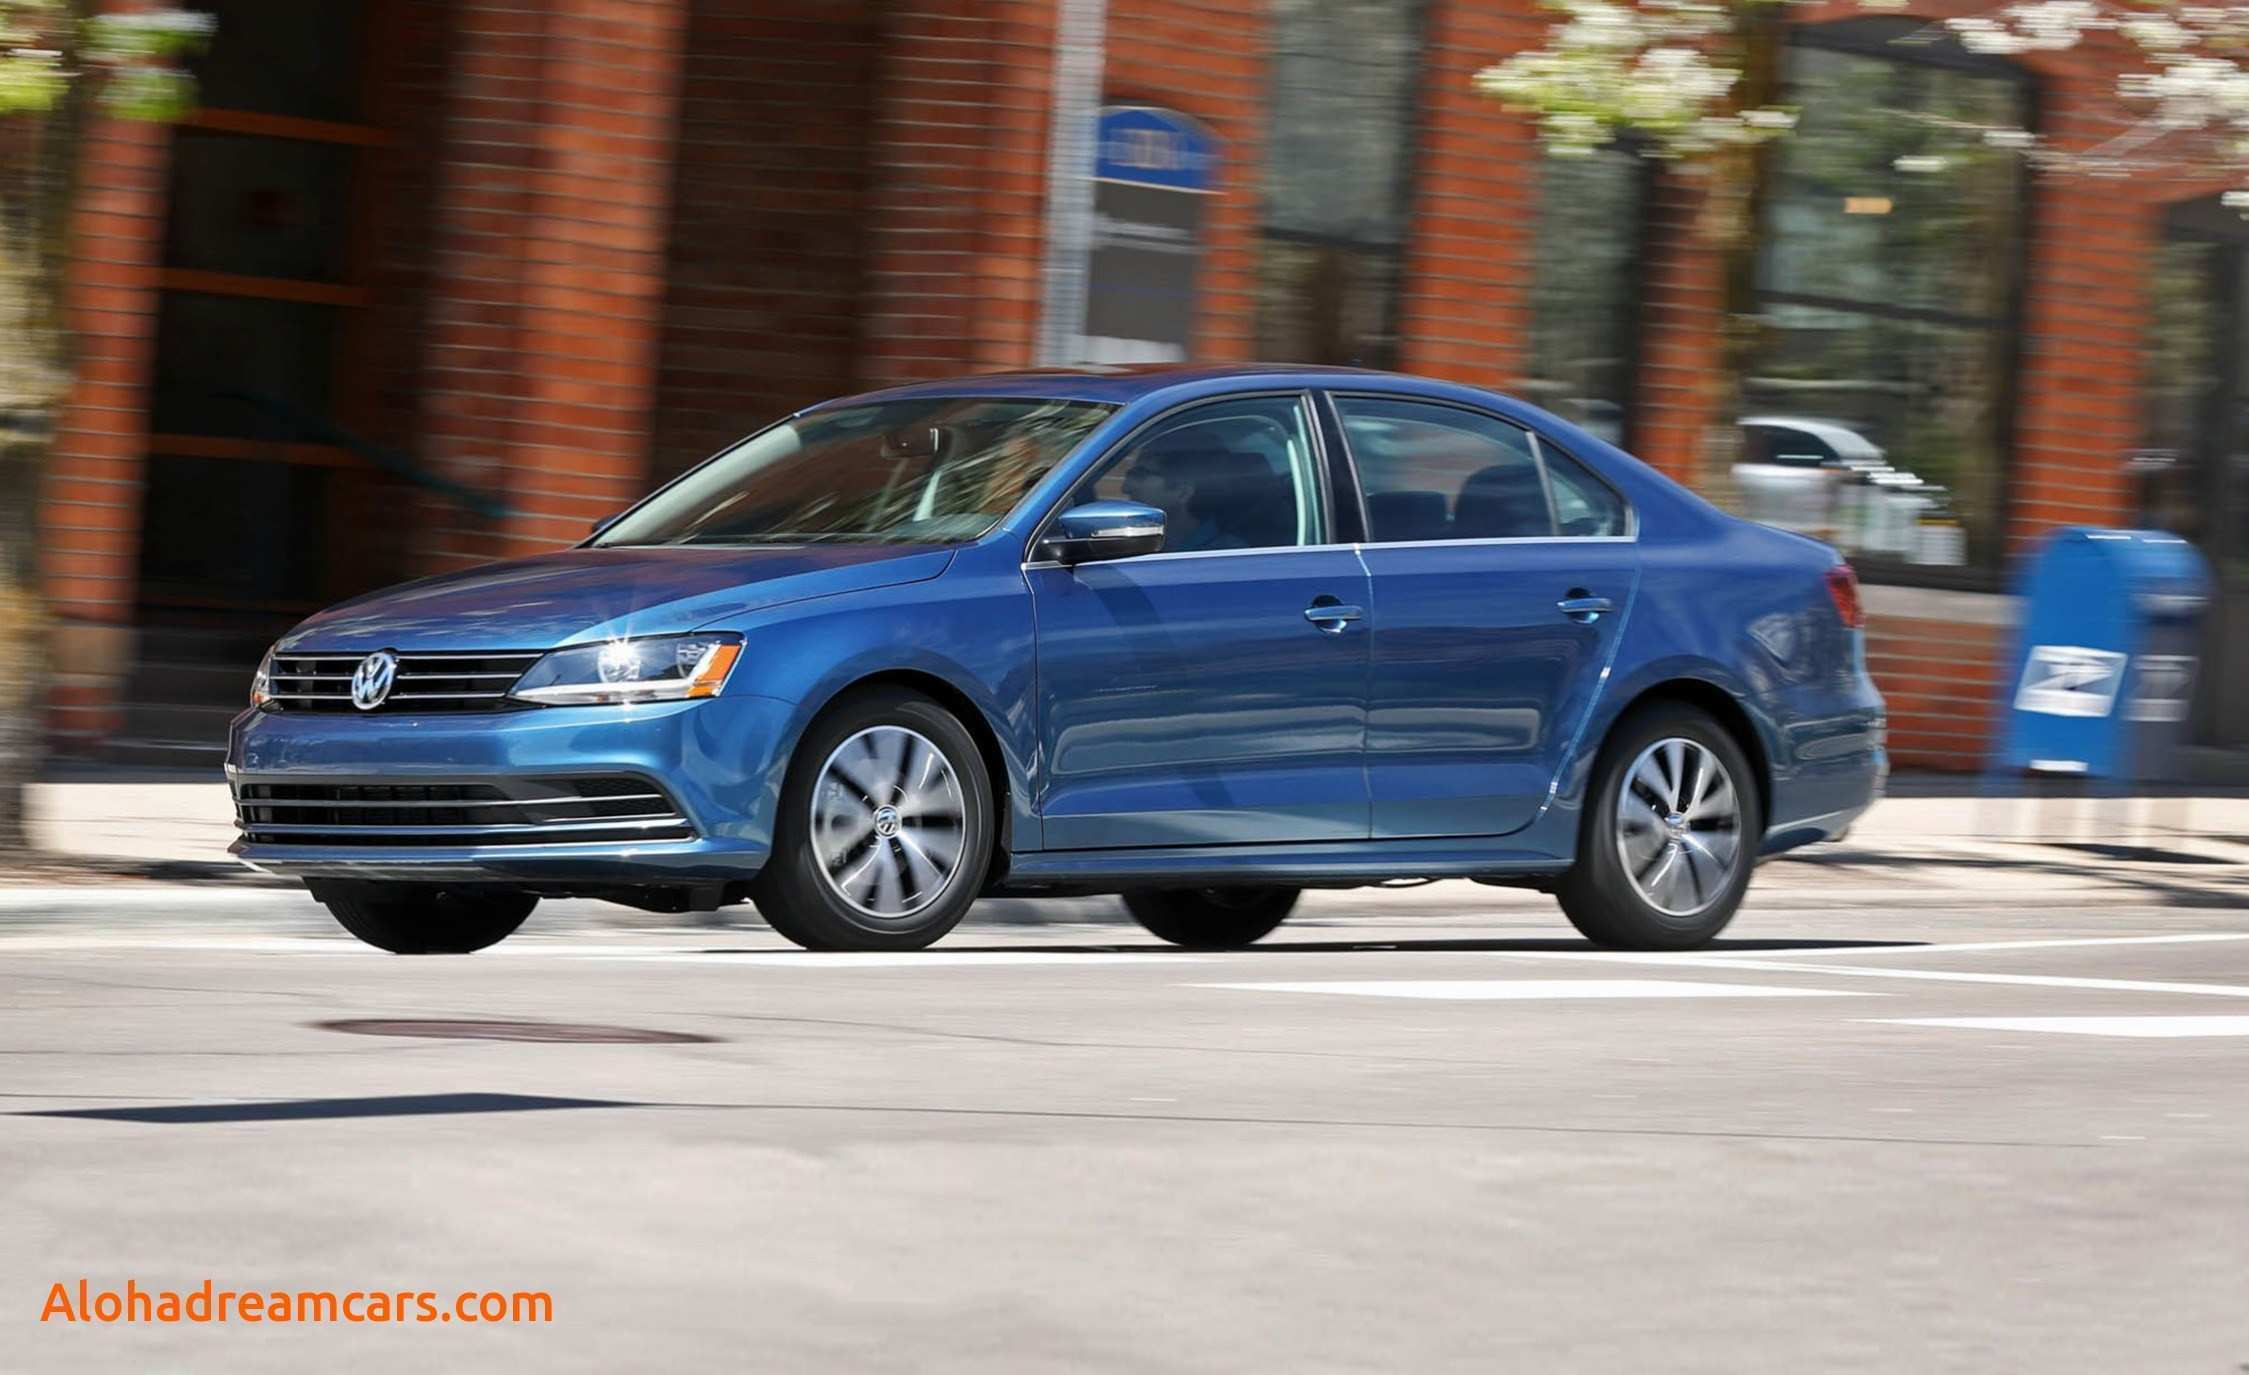 27 Best 2019 Vw Jetta Tdi Concept And Review